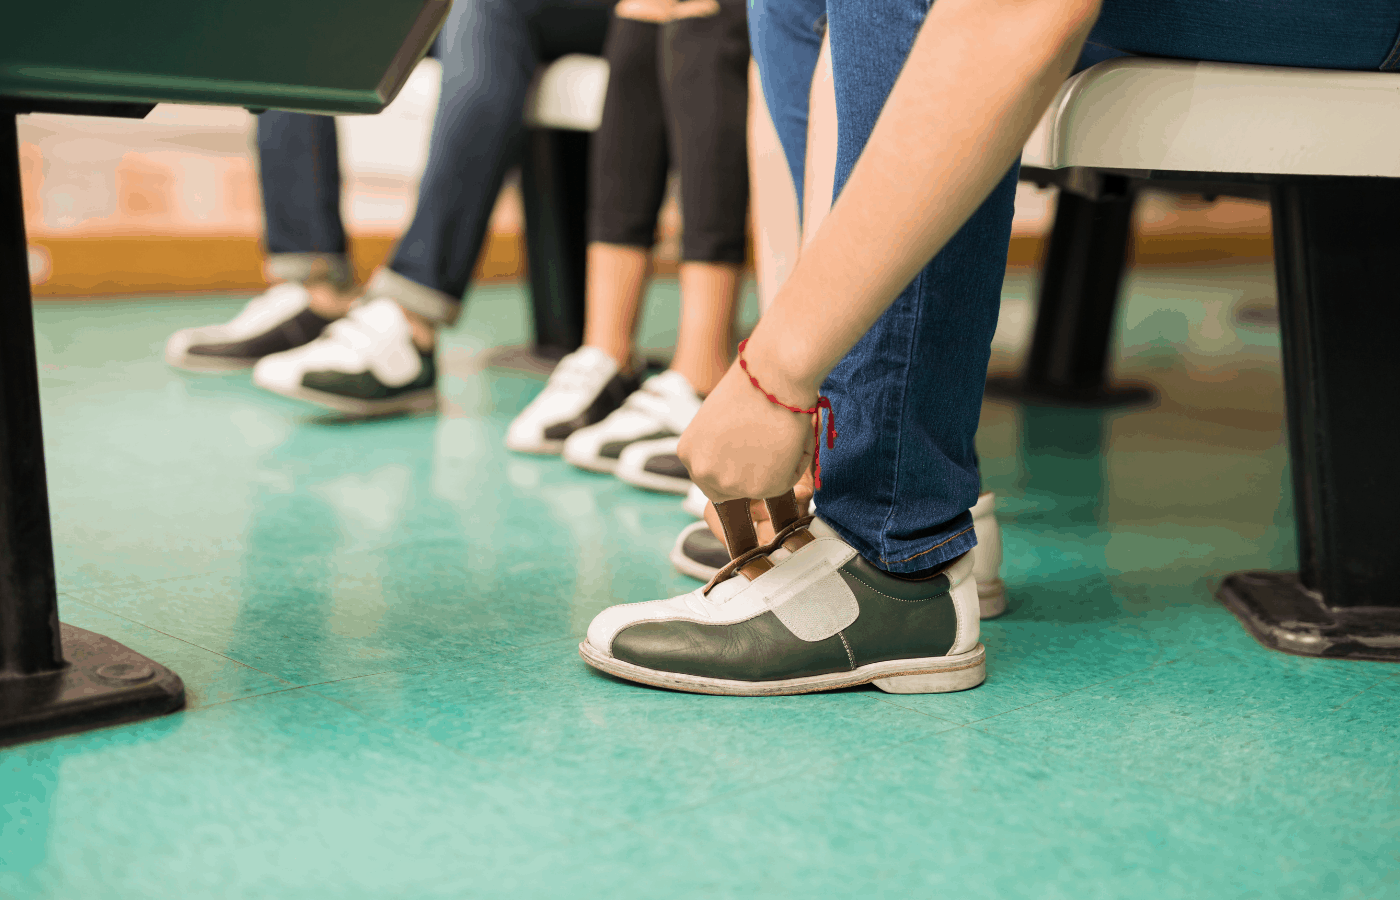 can you go bowling without socks